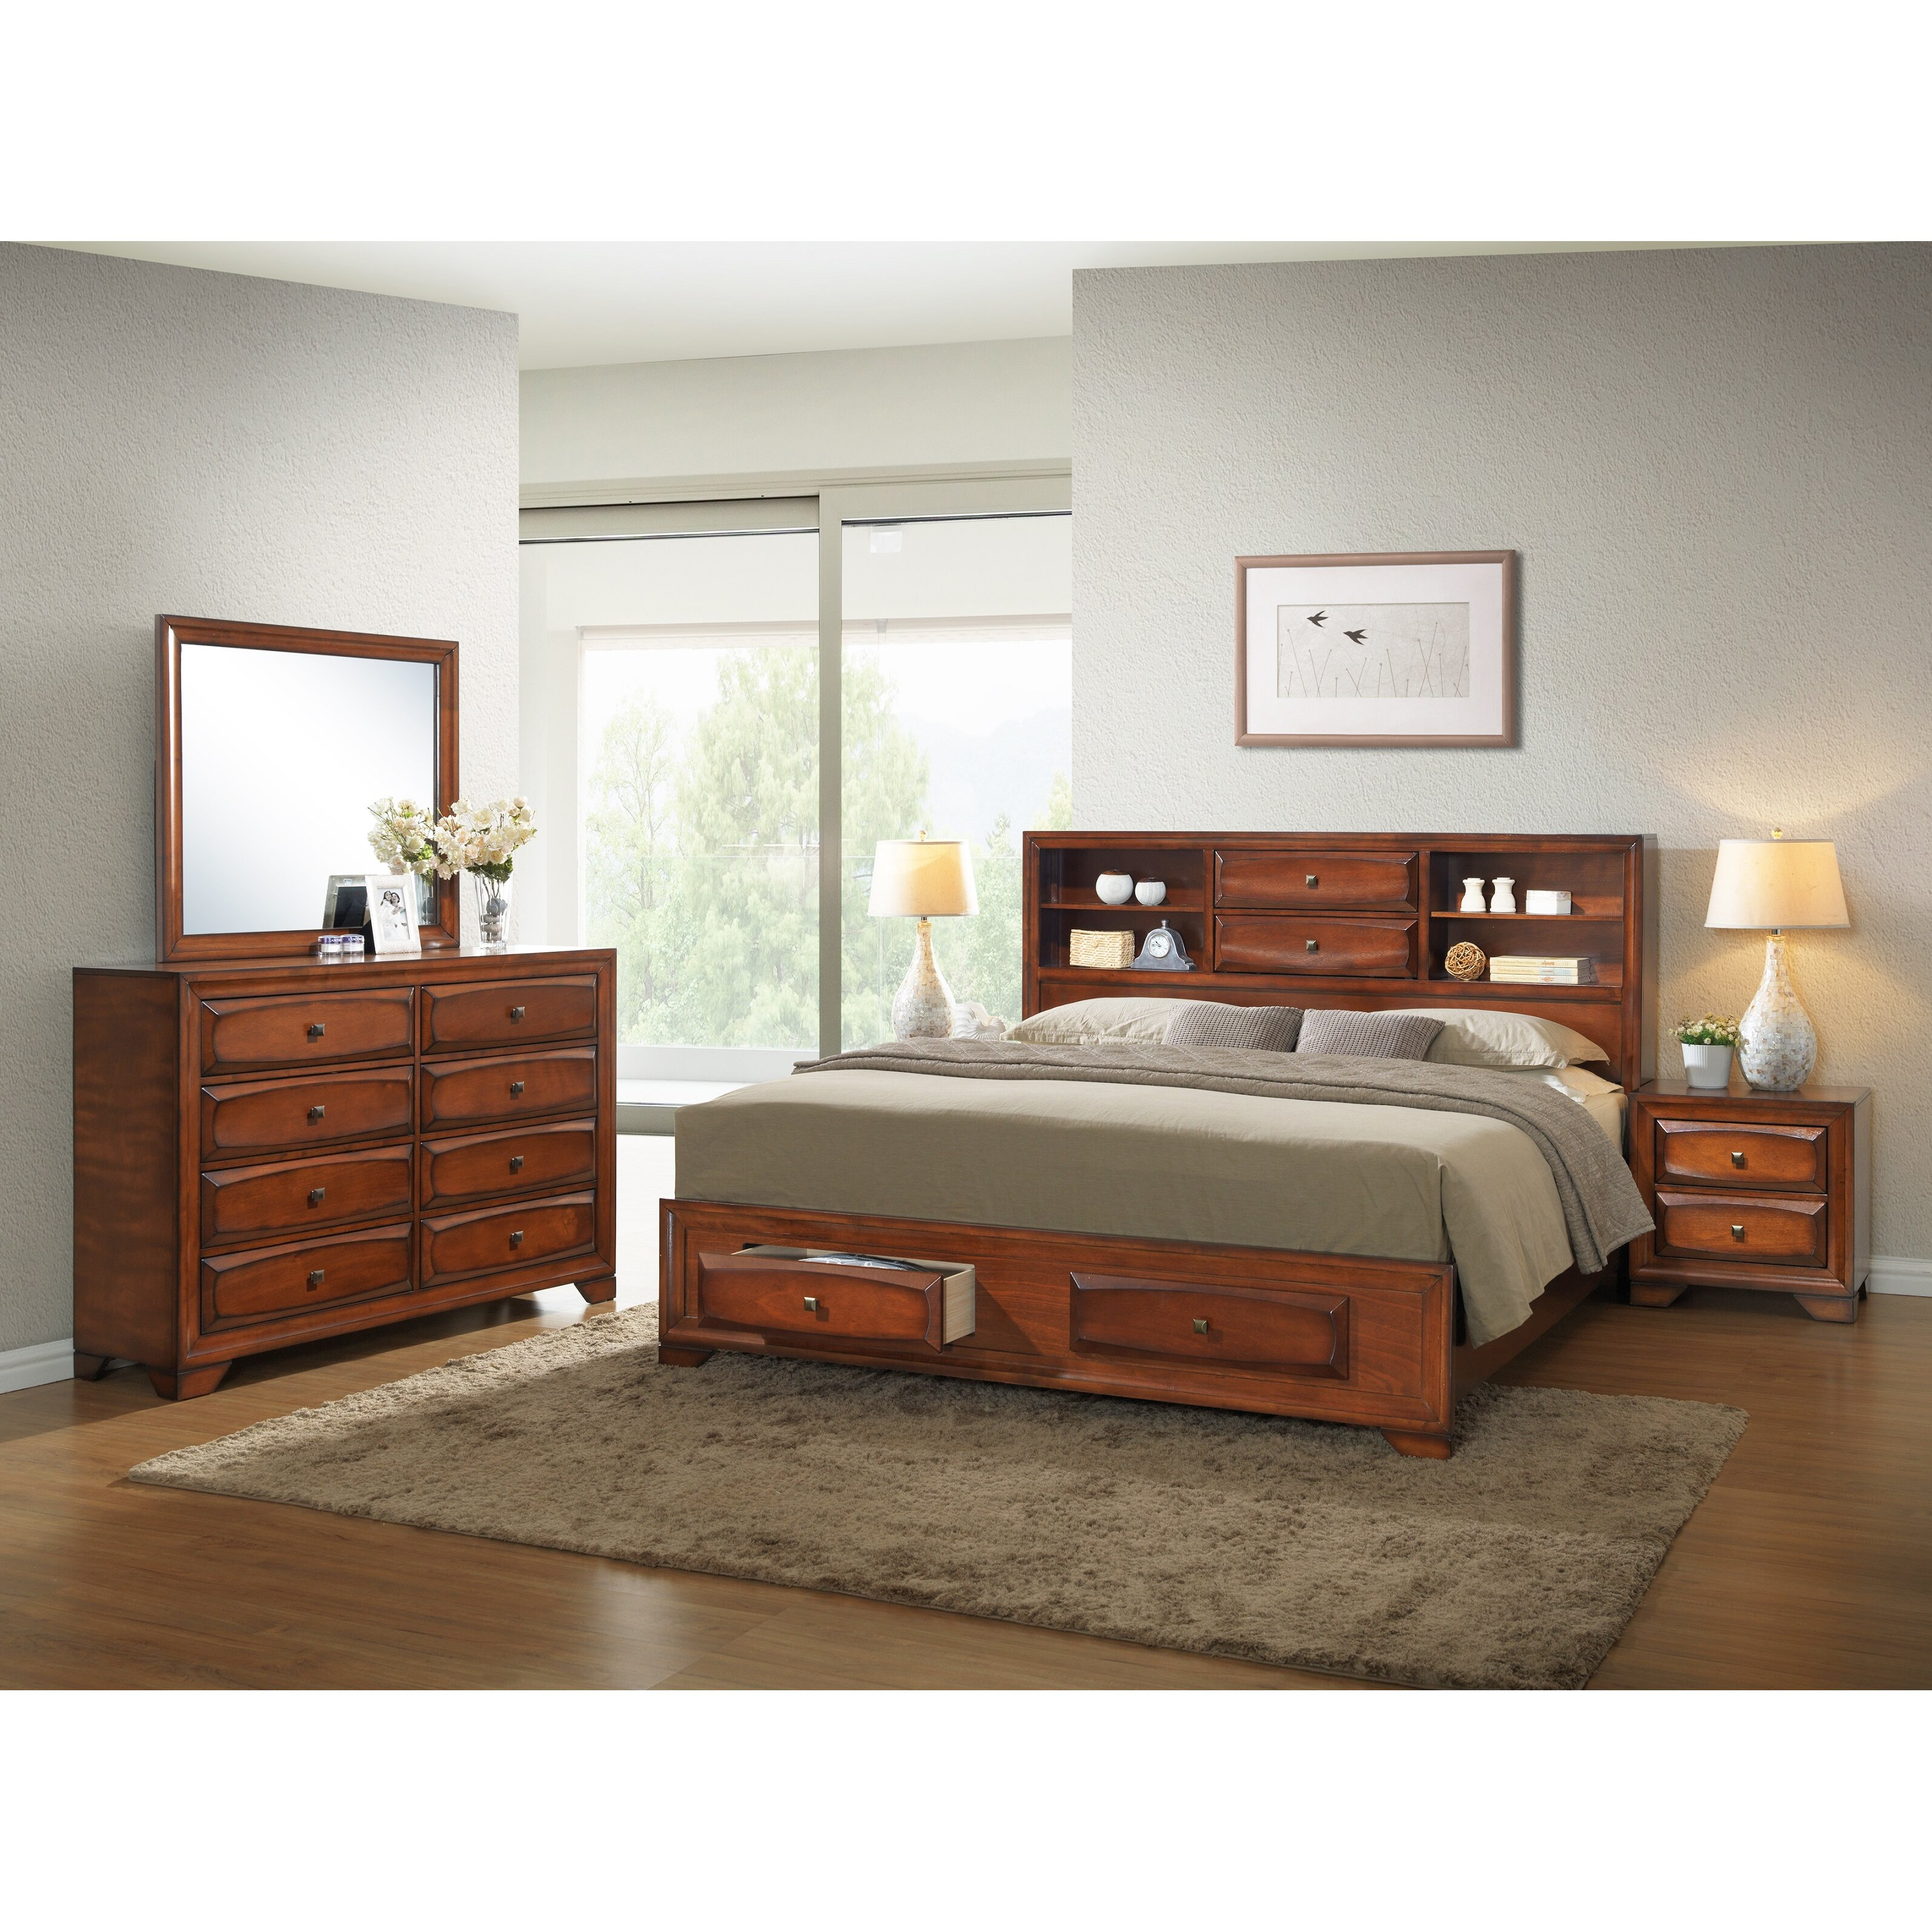 Roundhill furniture columbus ohio 23 images discount for Bedroom furniture sets columbus ohio